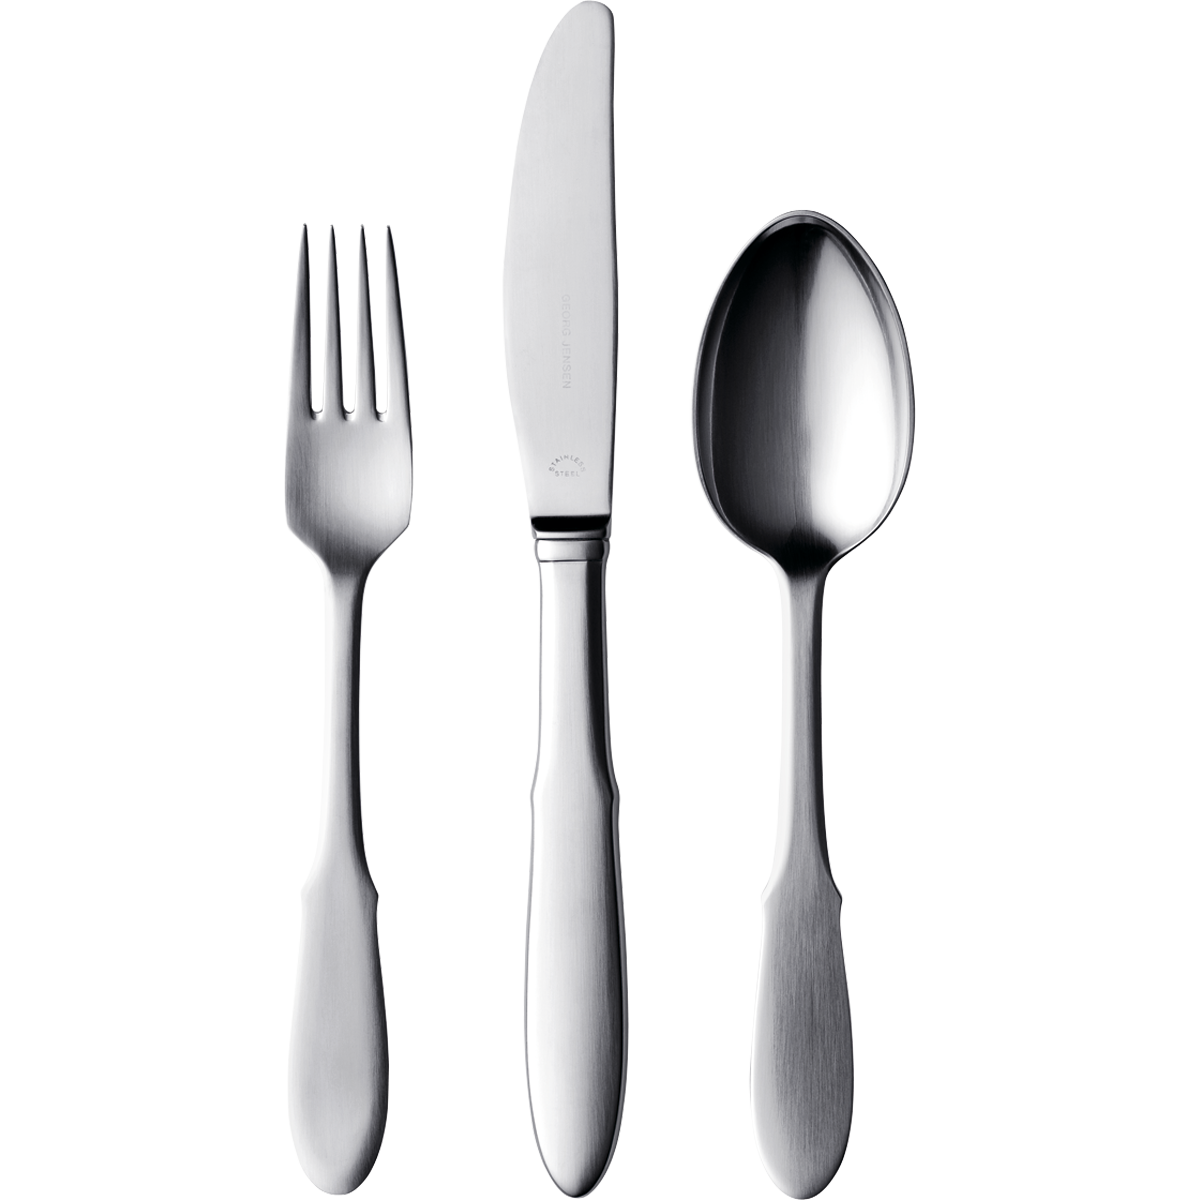 Silver clipart metal spoon Knife Fork collection hd and